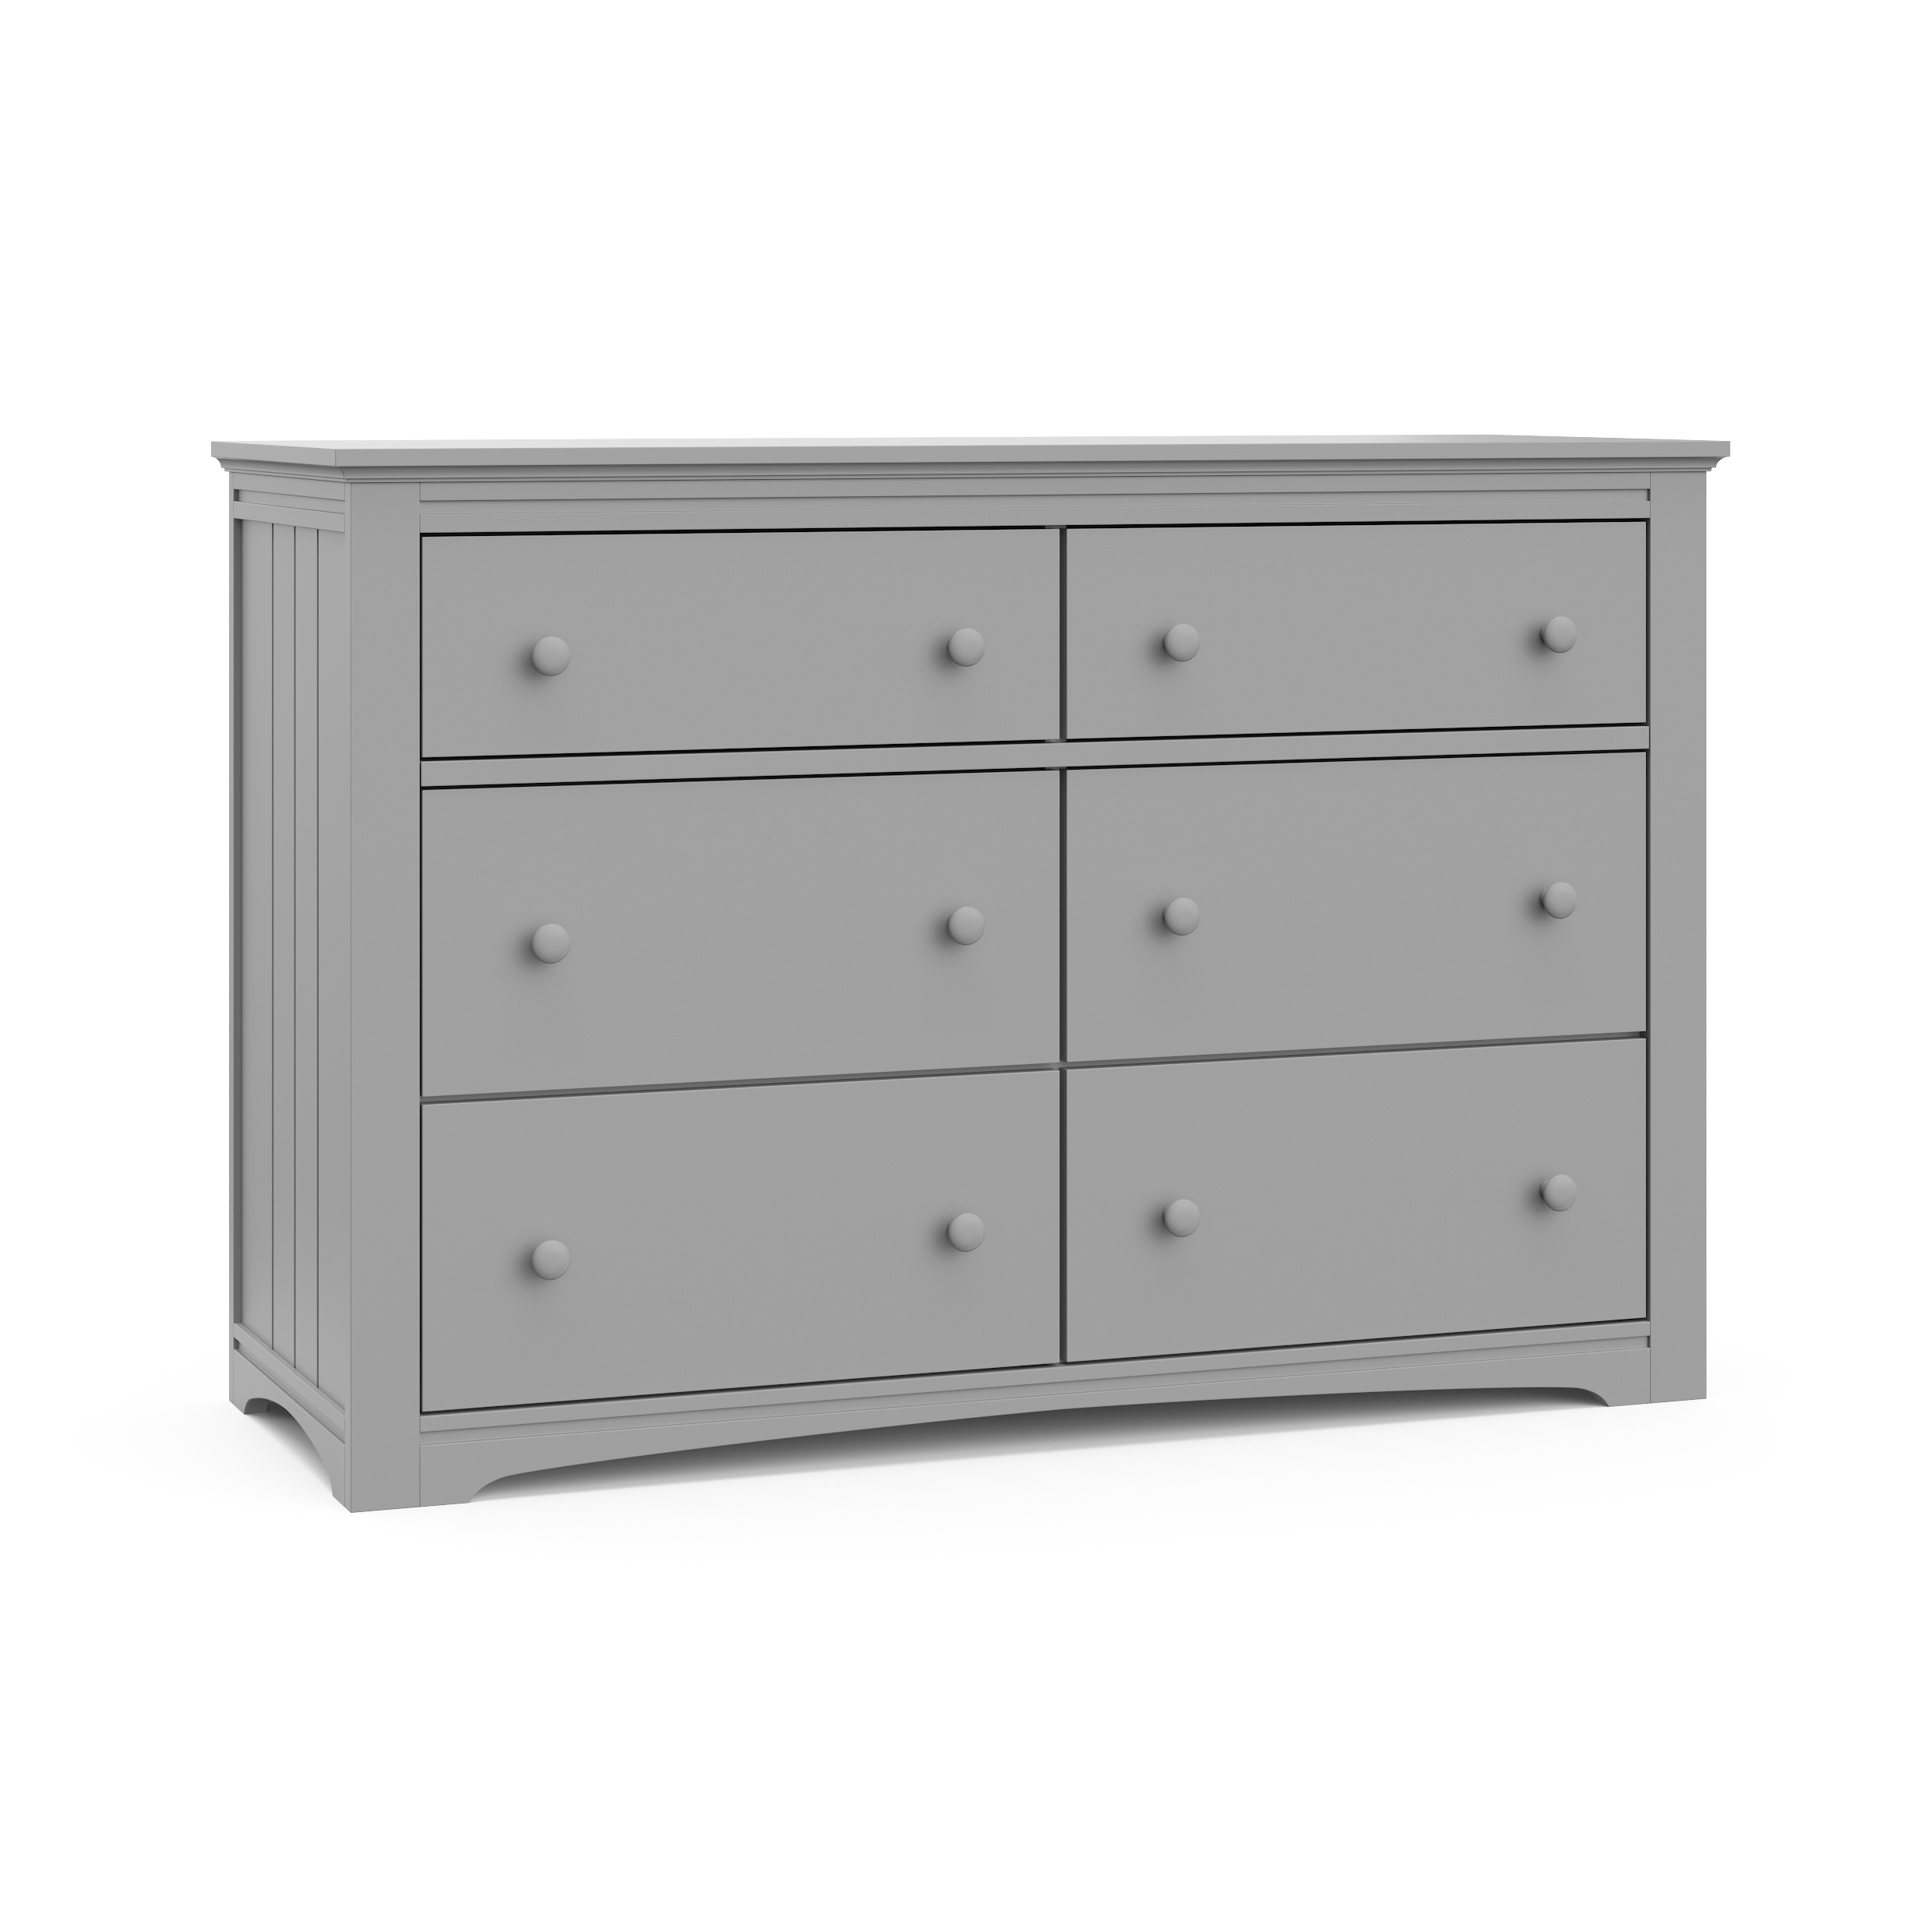 Graco Hadley 6 Drawer Dresser Pebble